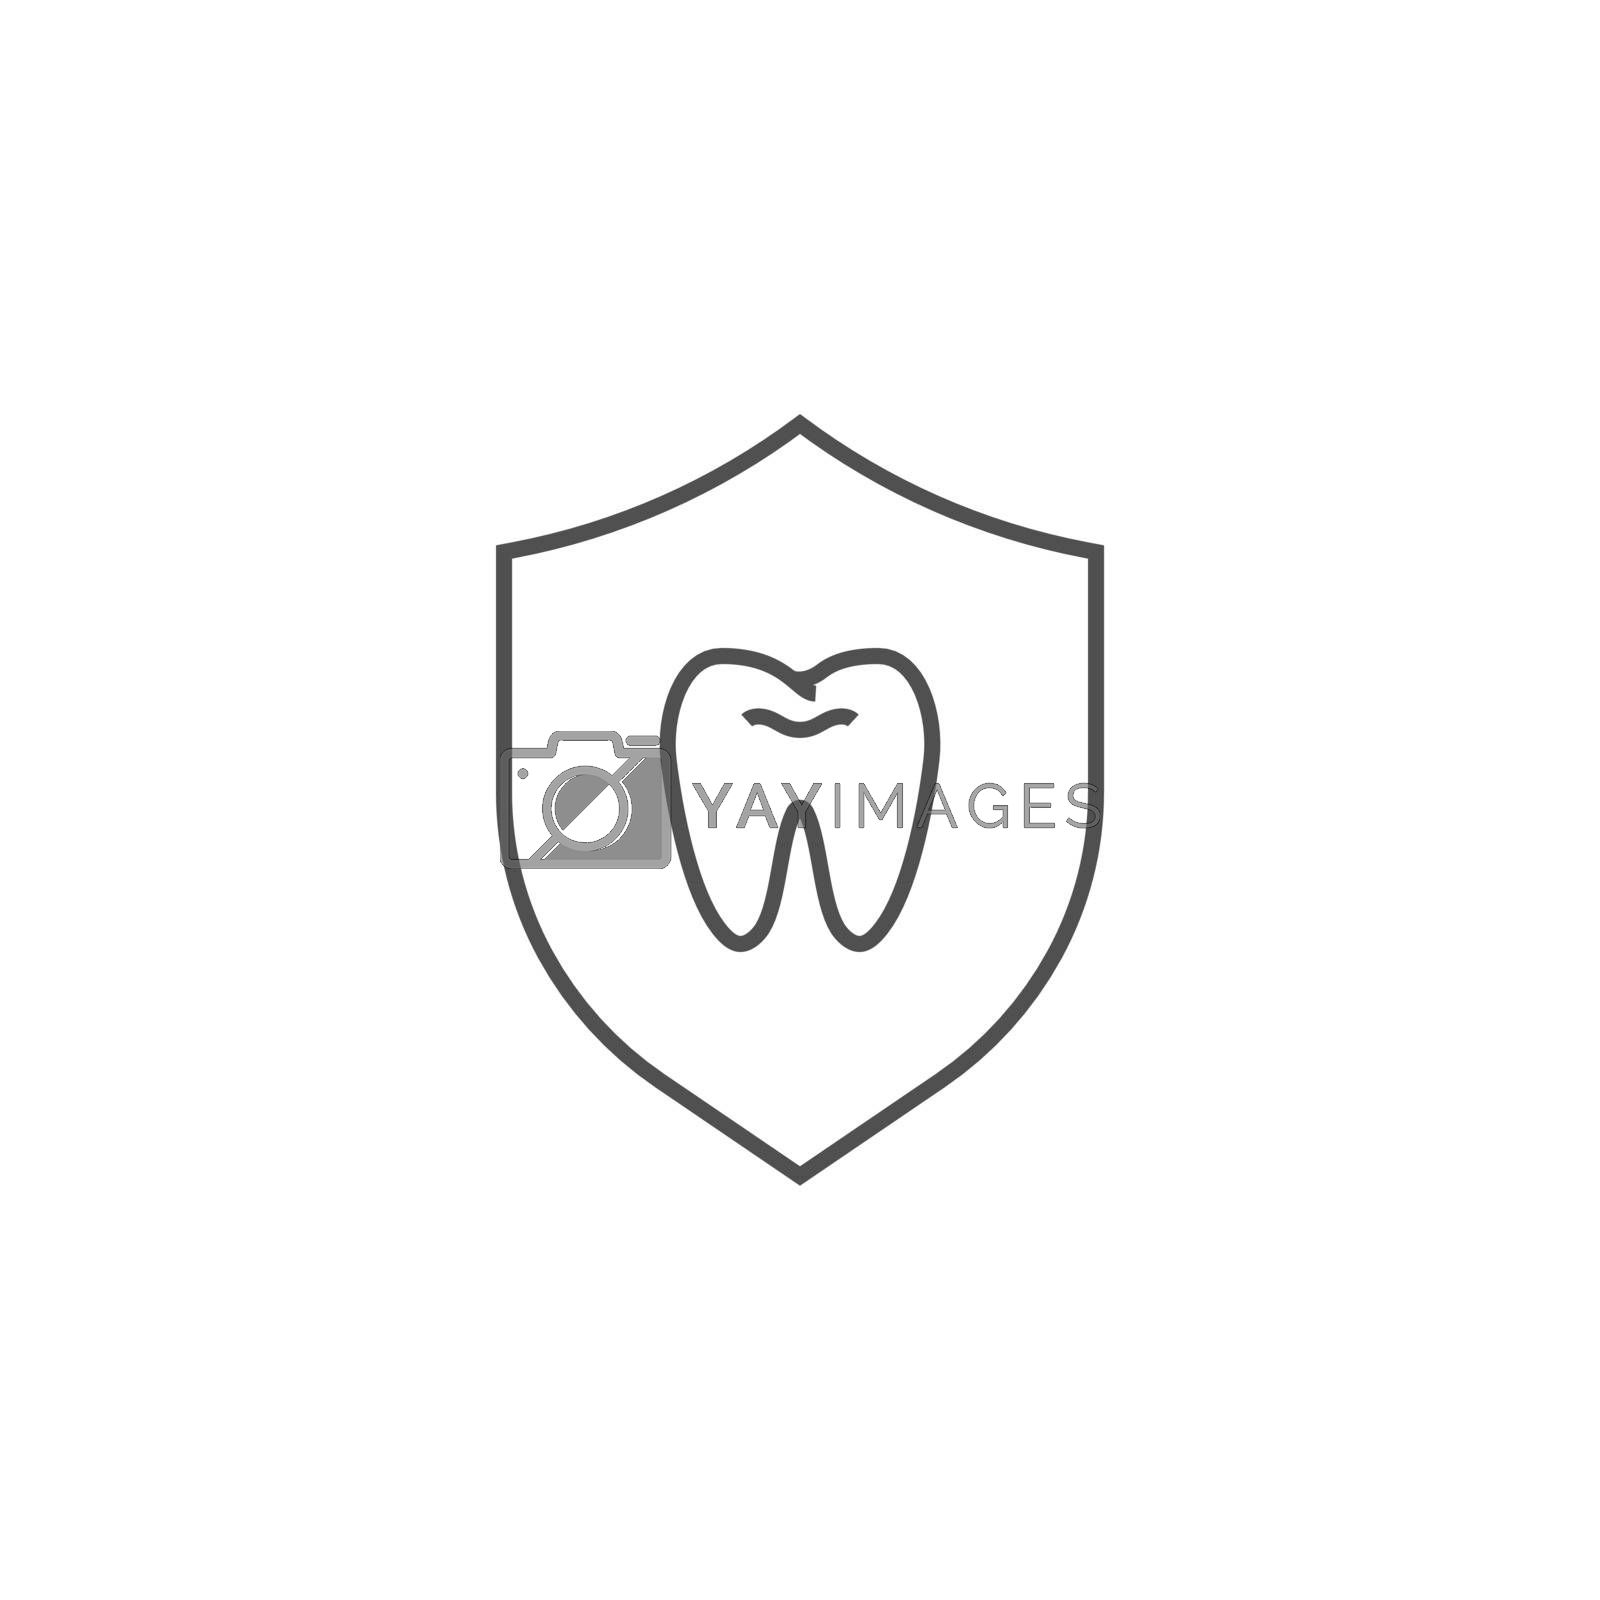 Teeth Protection Icon. Teeth Protection Related Vector Line Icon. Isolated on White Background. Editable Stroke.